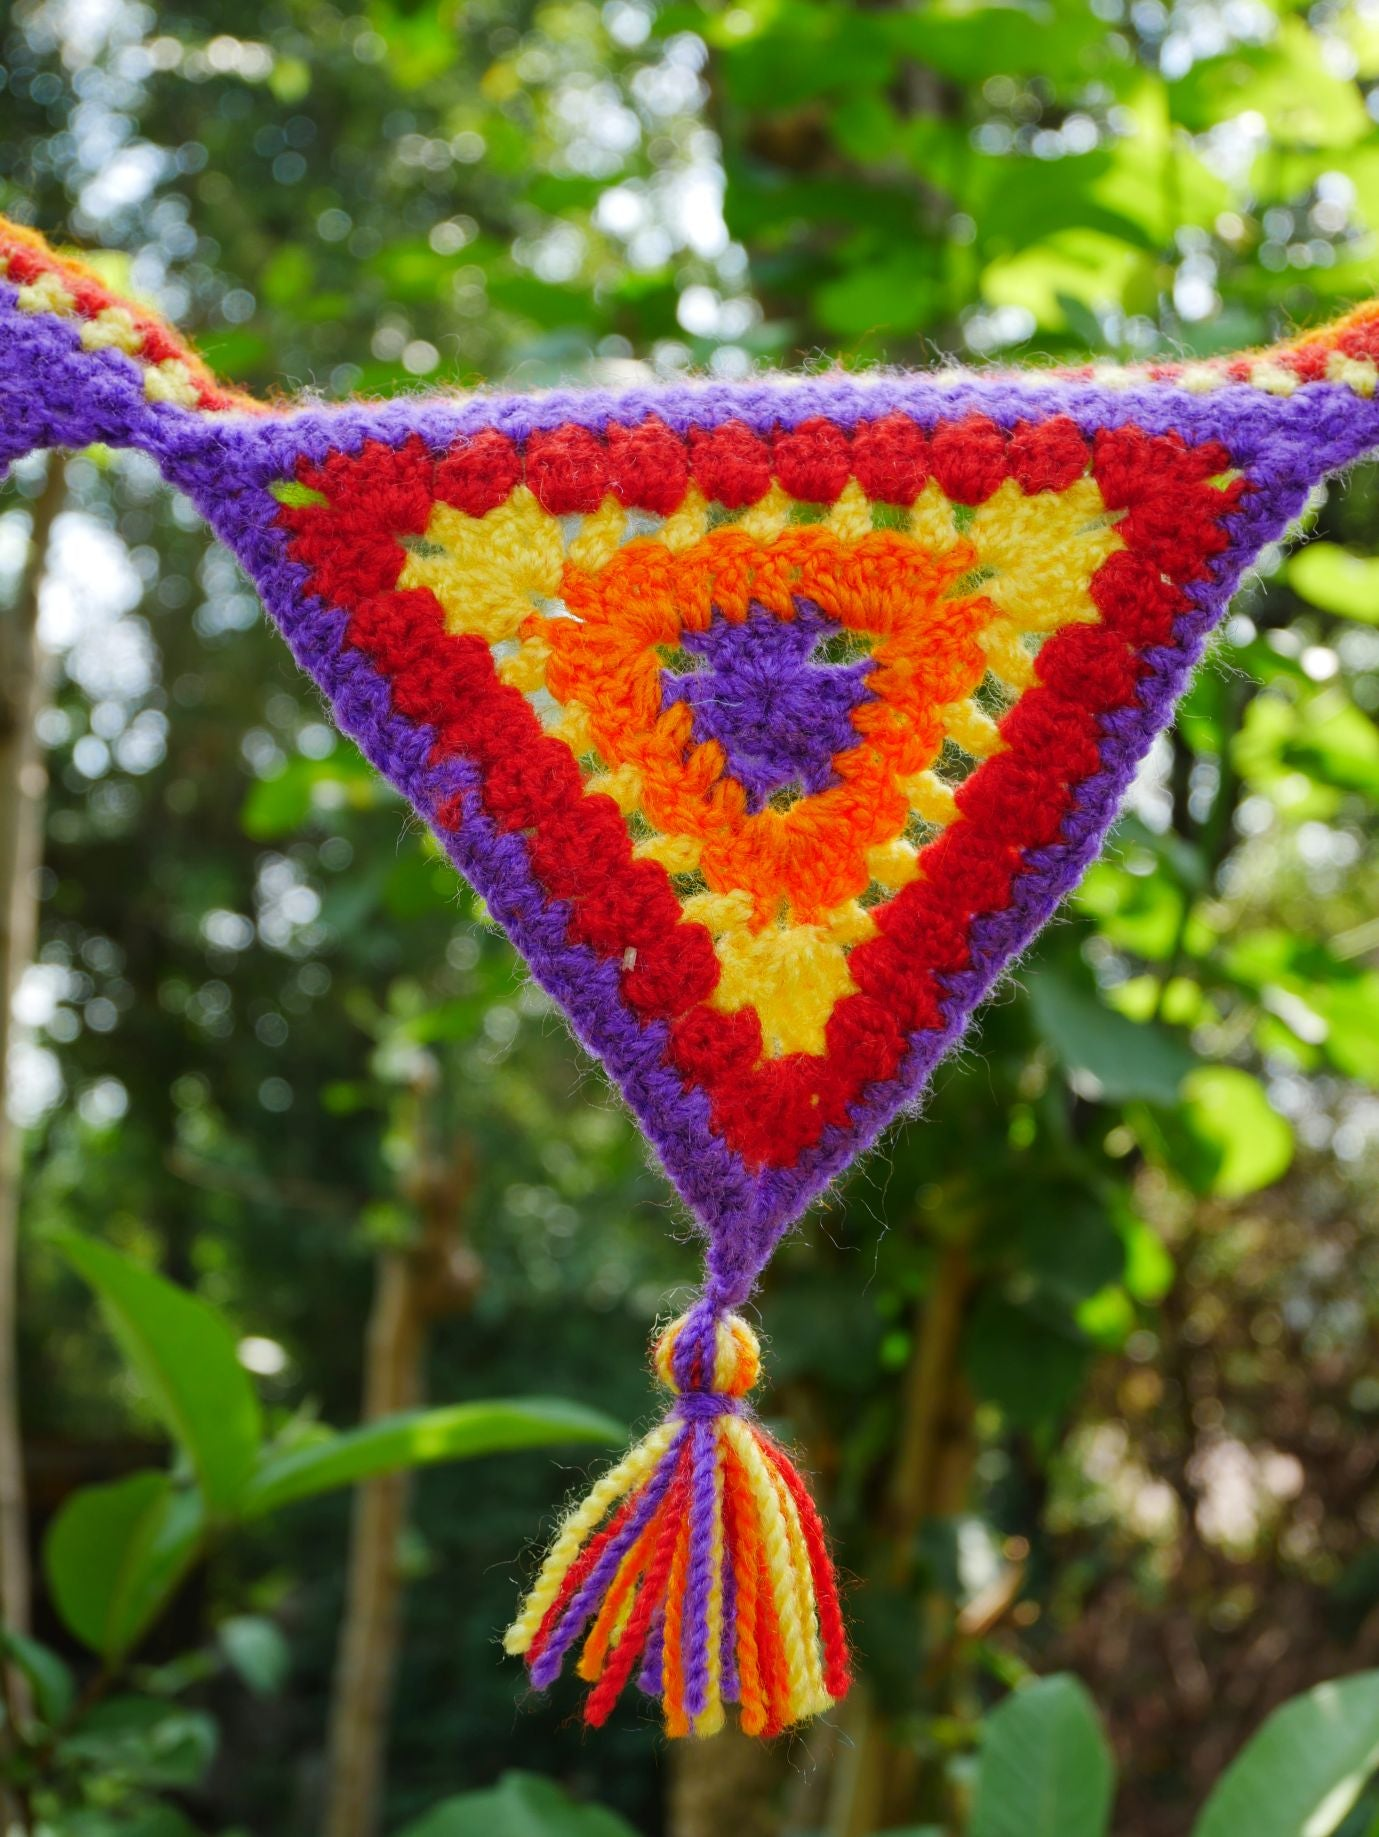 Crochet door hanging-  colorful door garland or window valence - hippie decor - gypsy curtain